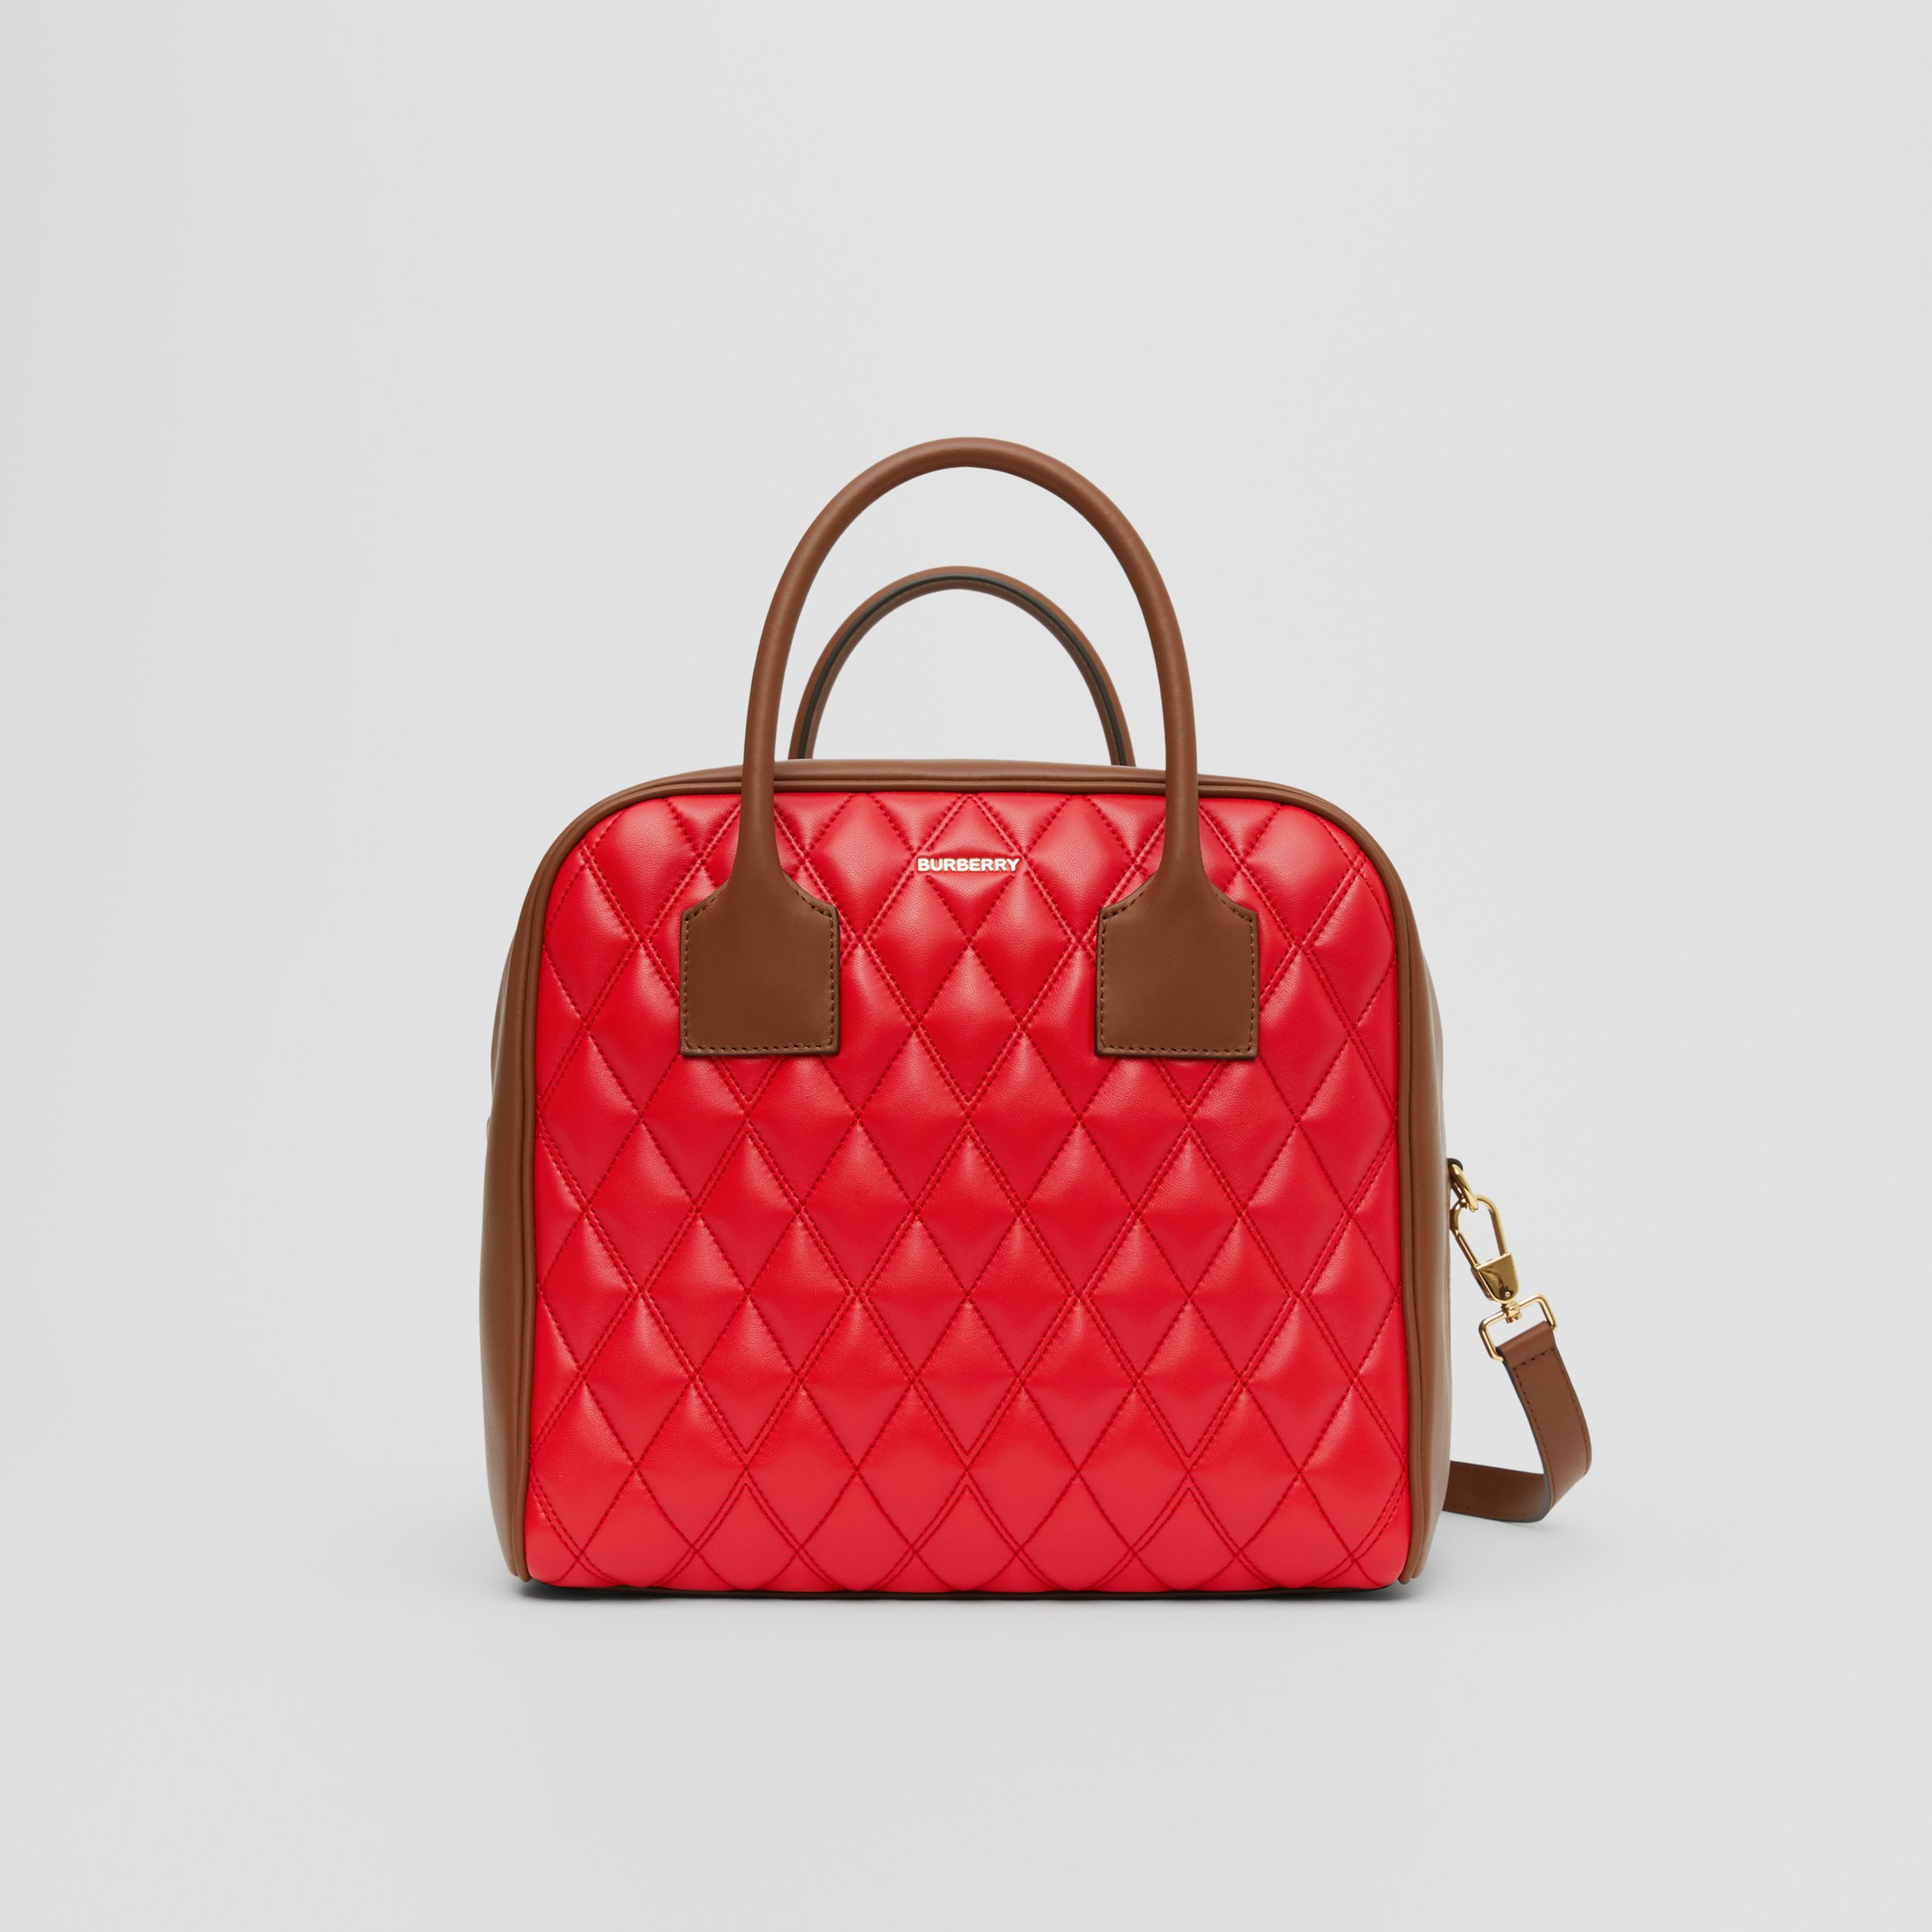 Medium Quilted Lambskin Cube Bag in Bright Red - Women | Burberry - 1